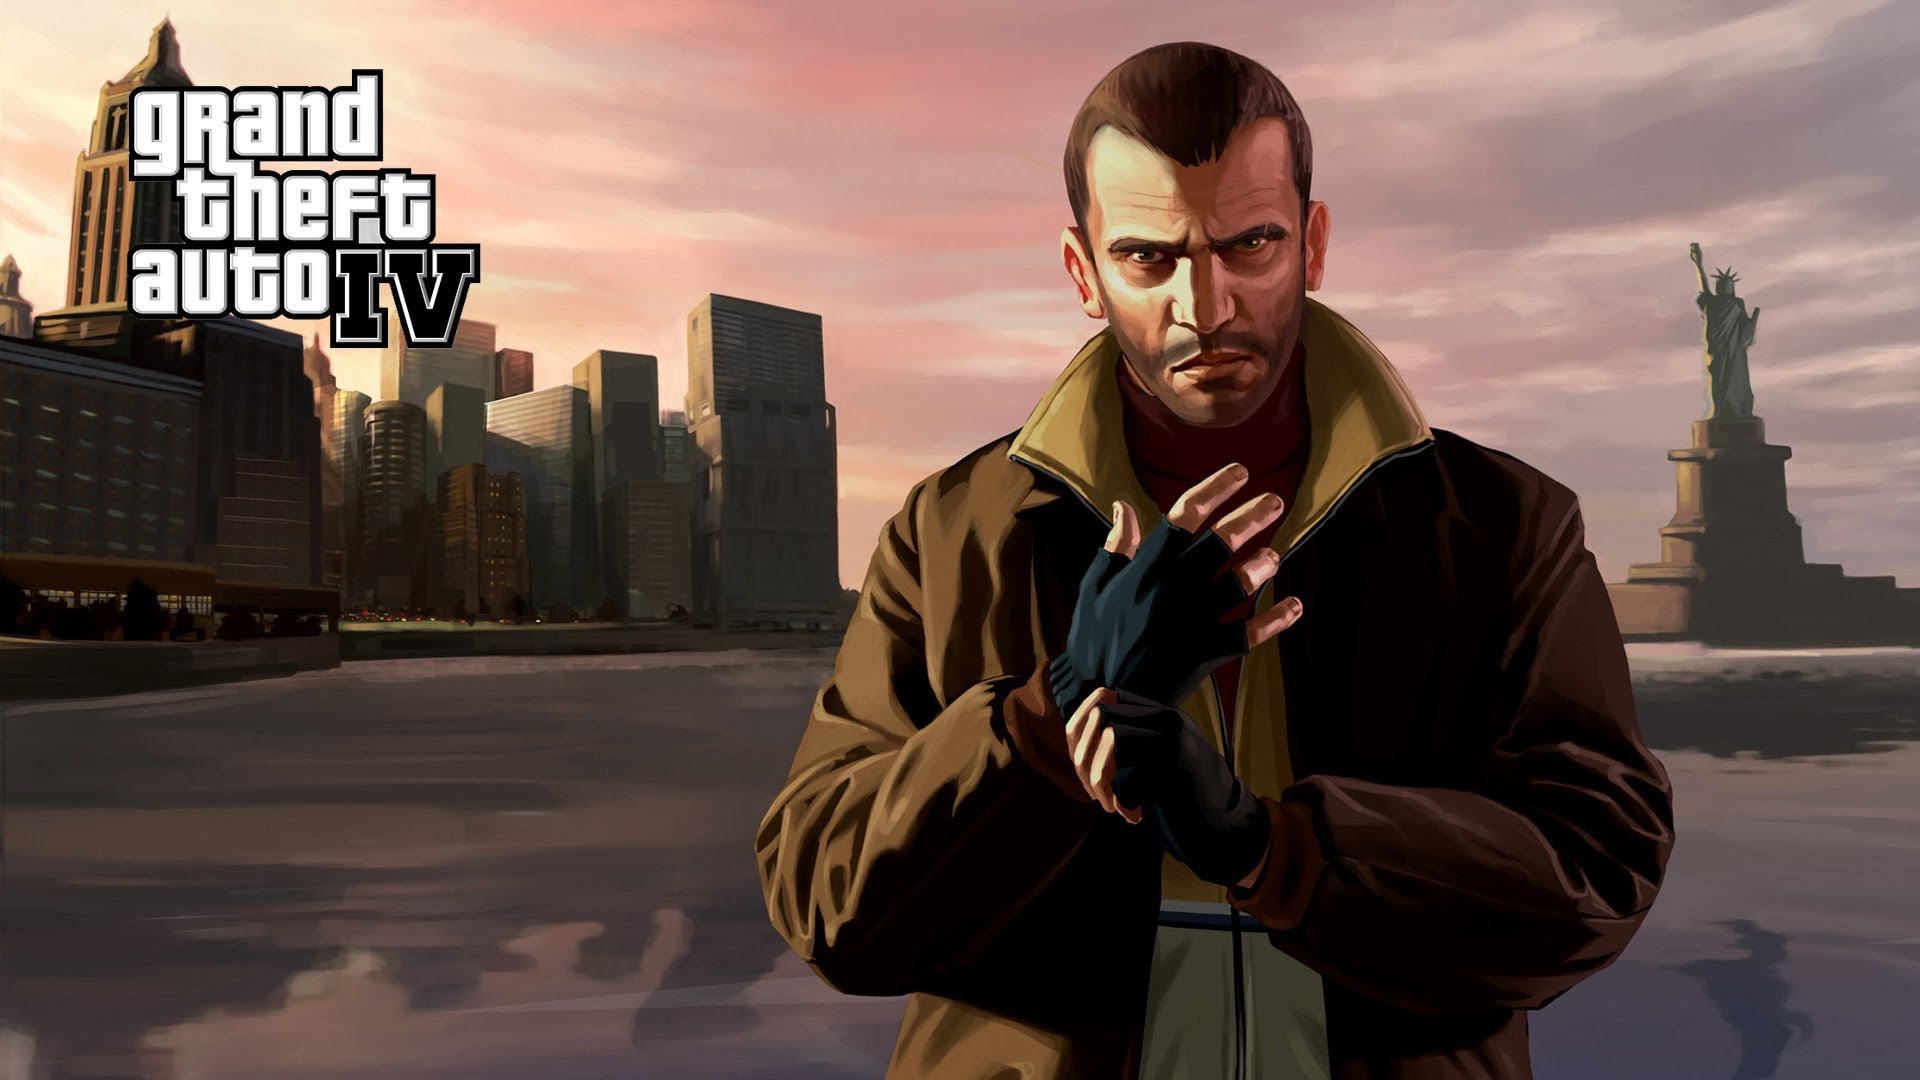 1920x1080 > Grand Theft Auto IV Wallpapers